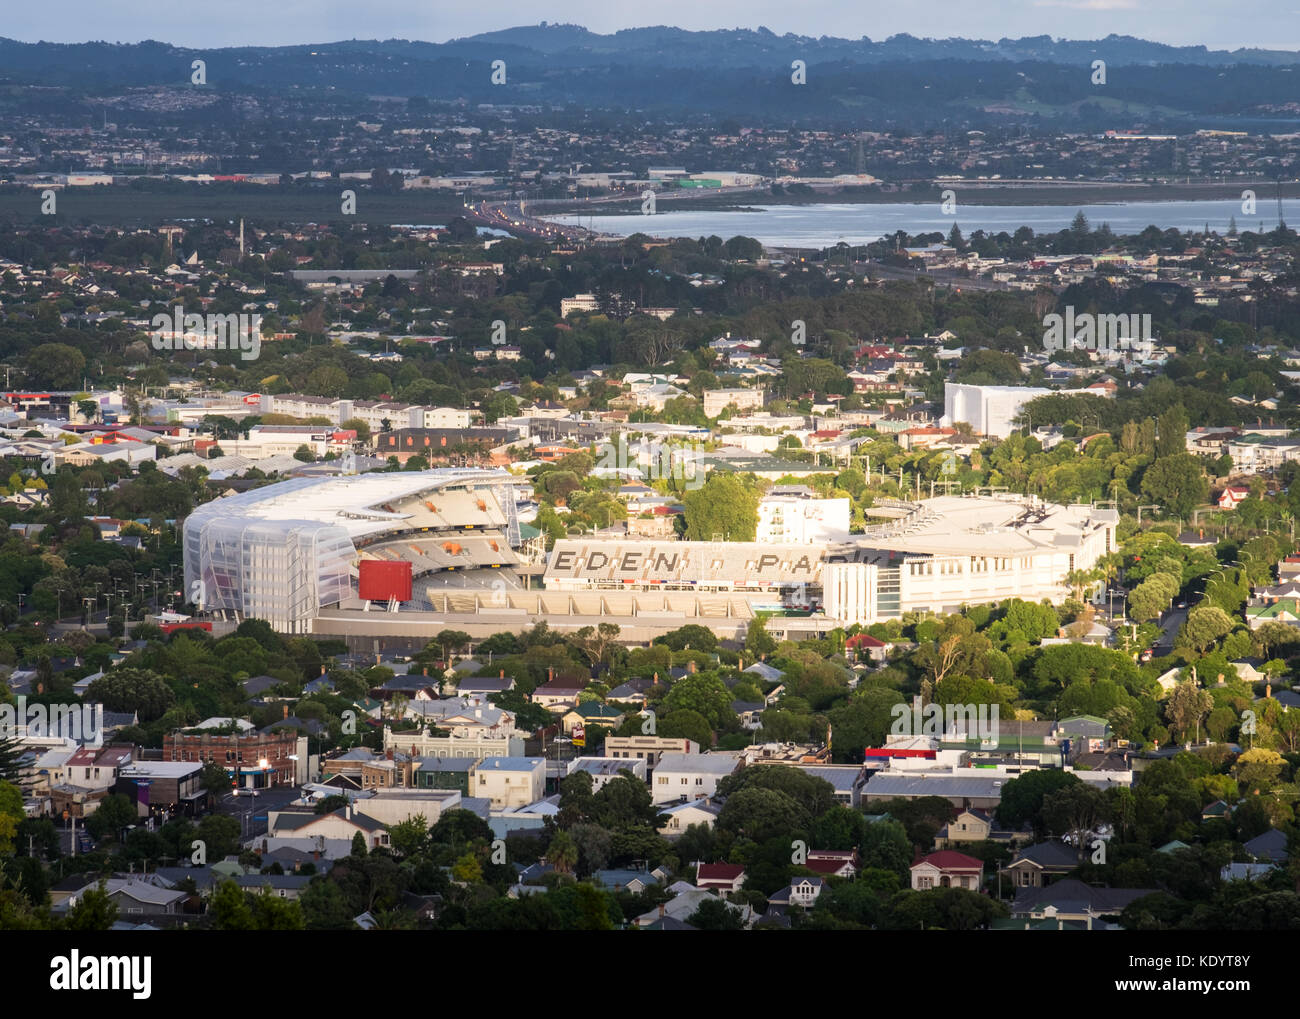 A view of the Eden Park stadium from Mt Eden in Auckland, New Zealand - Stock Image